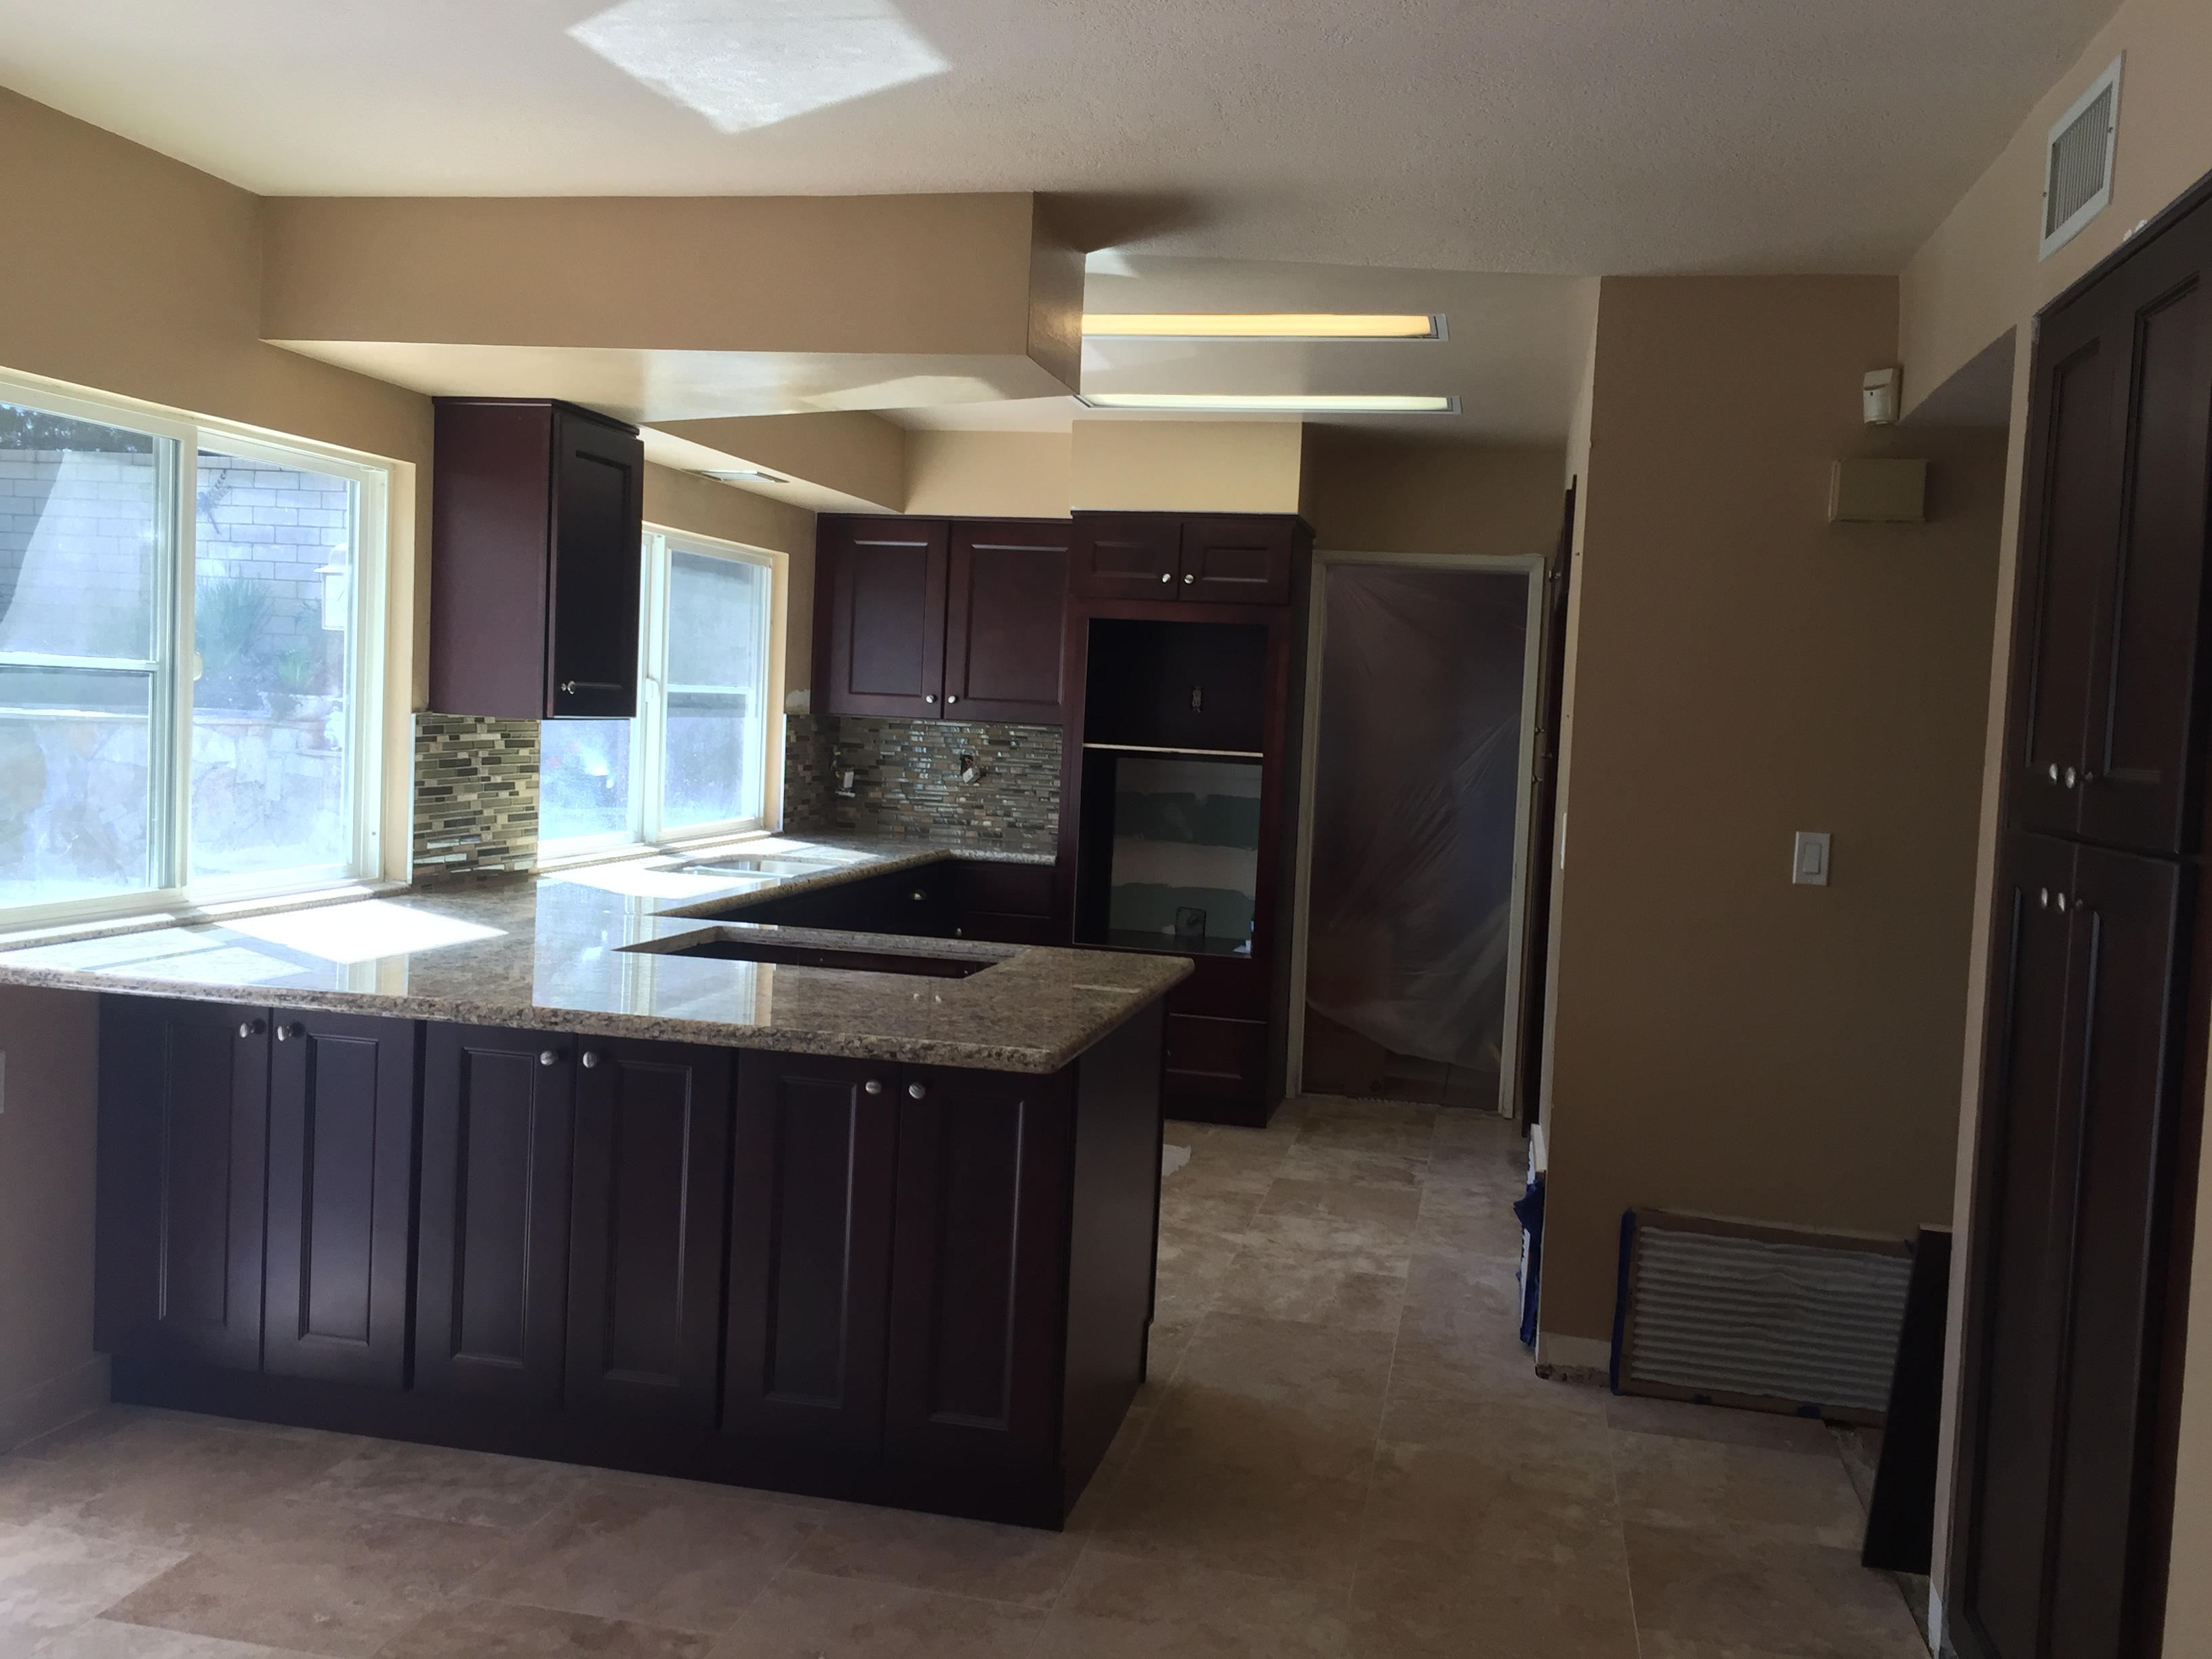 Kitchen California Espresso Cabinets & Venetian Gold Granite Counter Tops | Santa Clarita